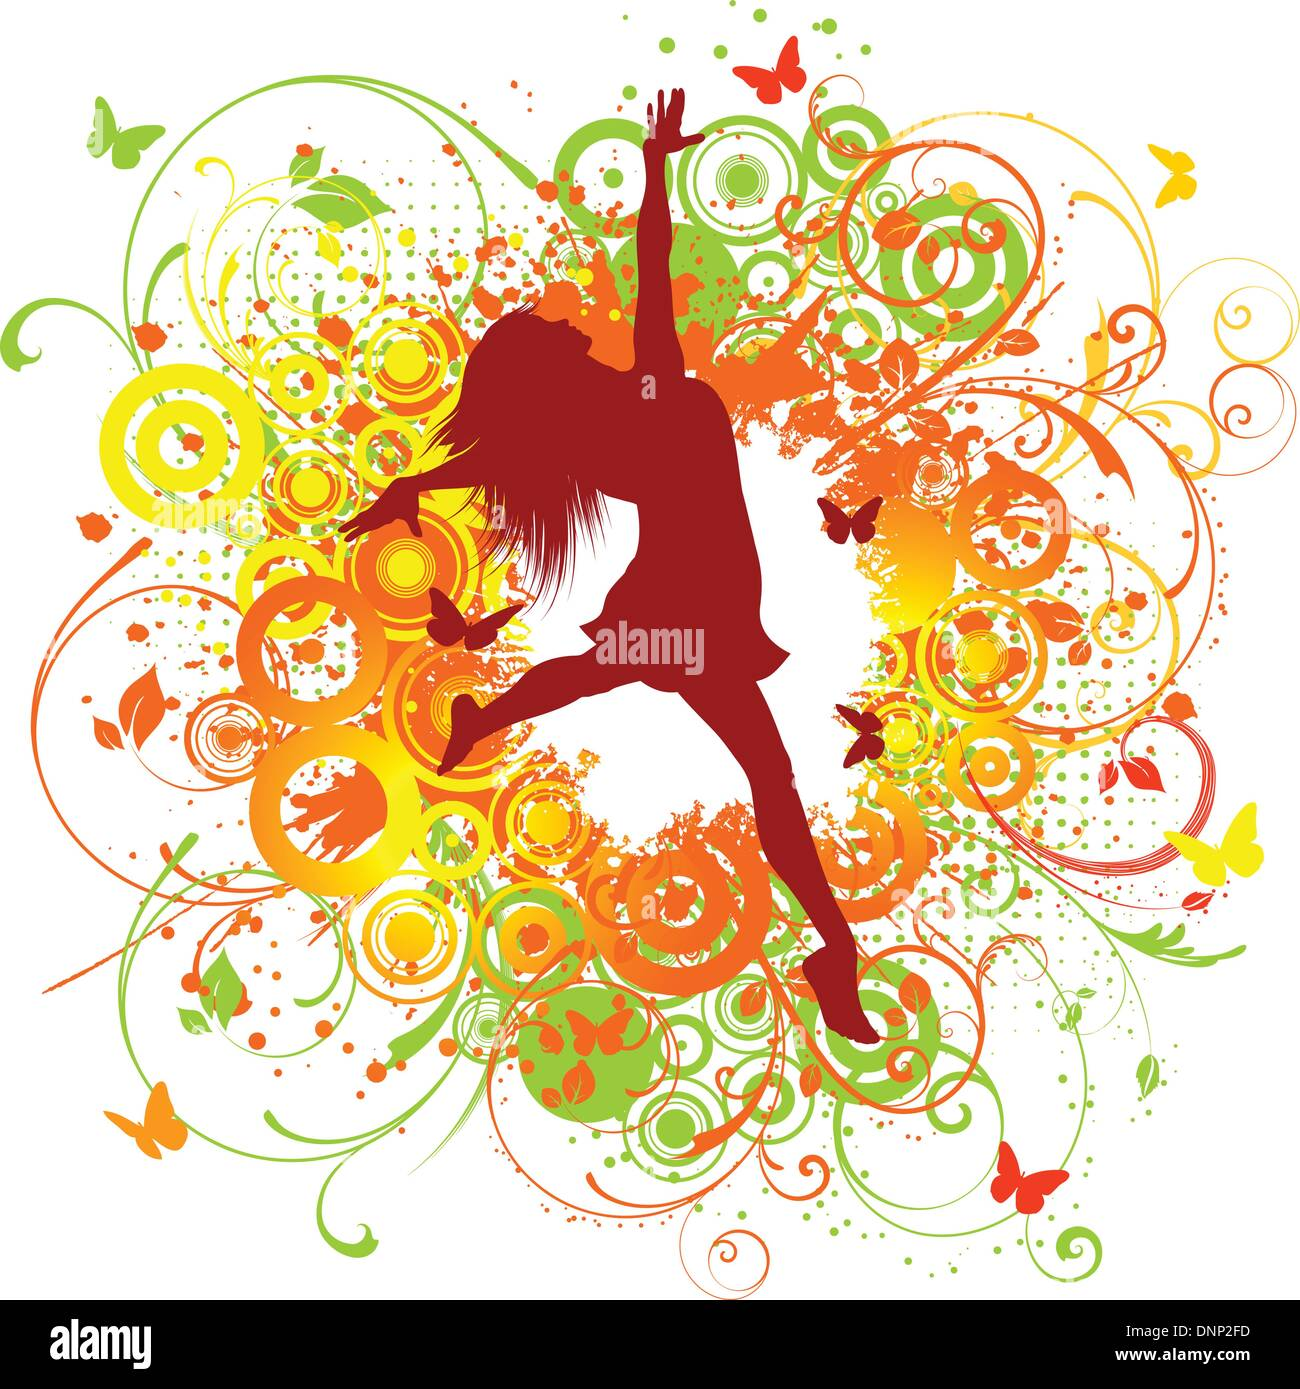 Silhouette of a happy female on a floral background - Stock Image